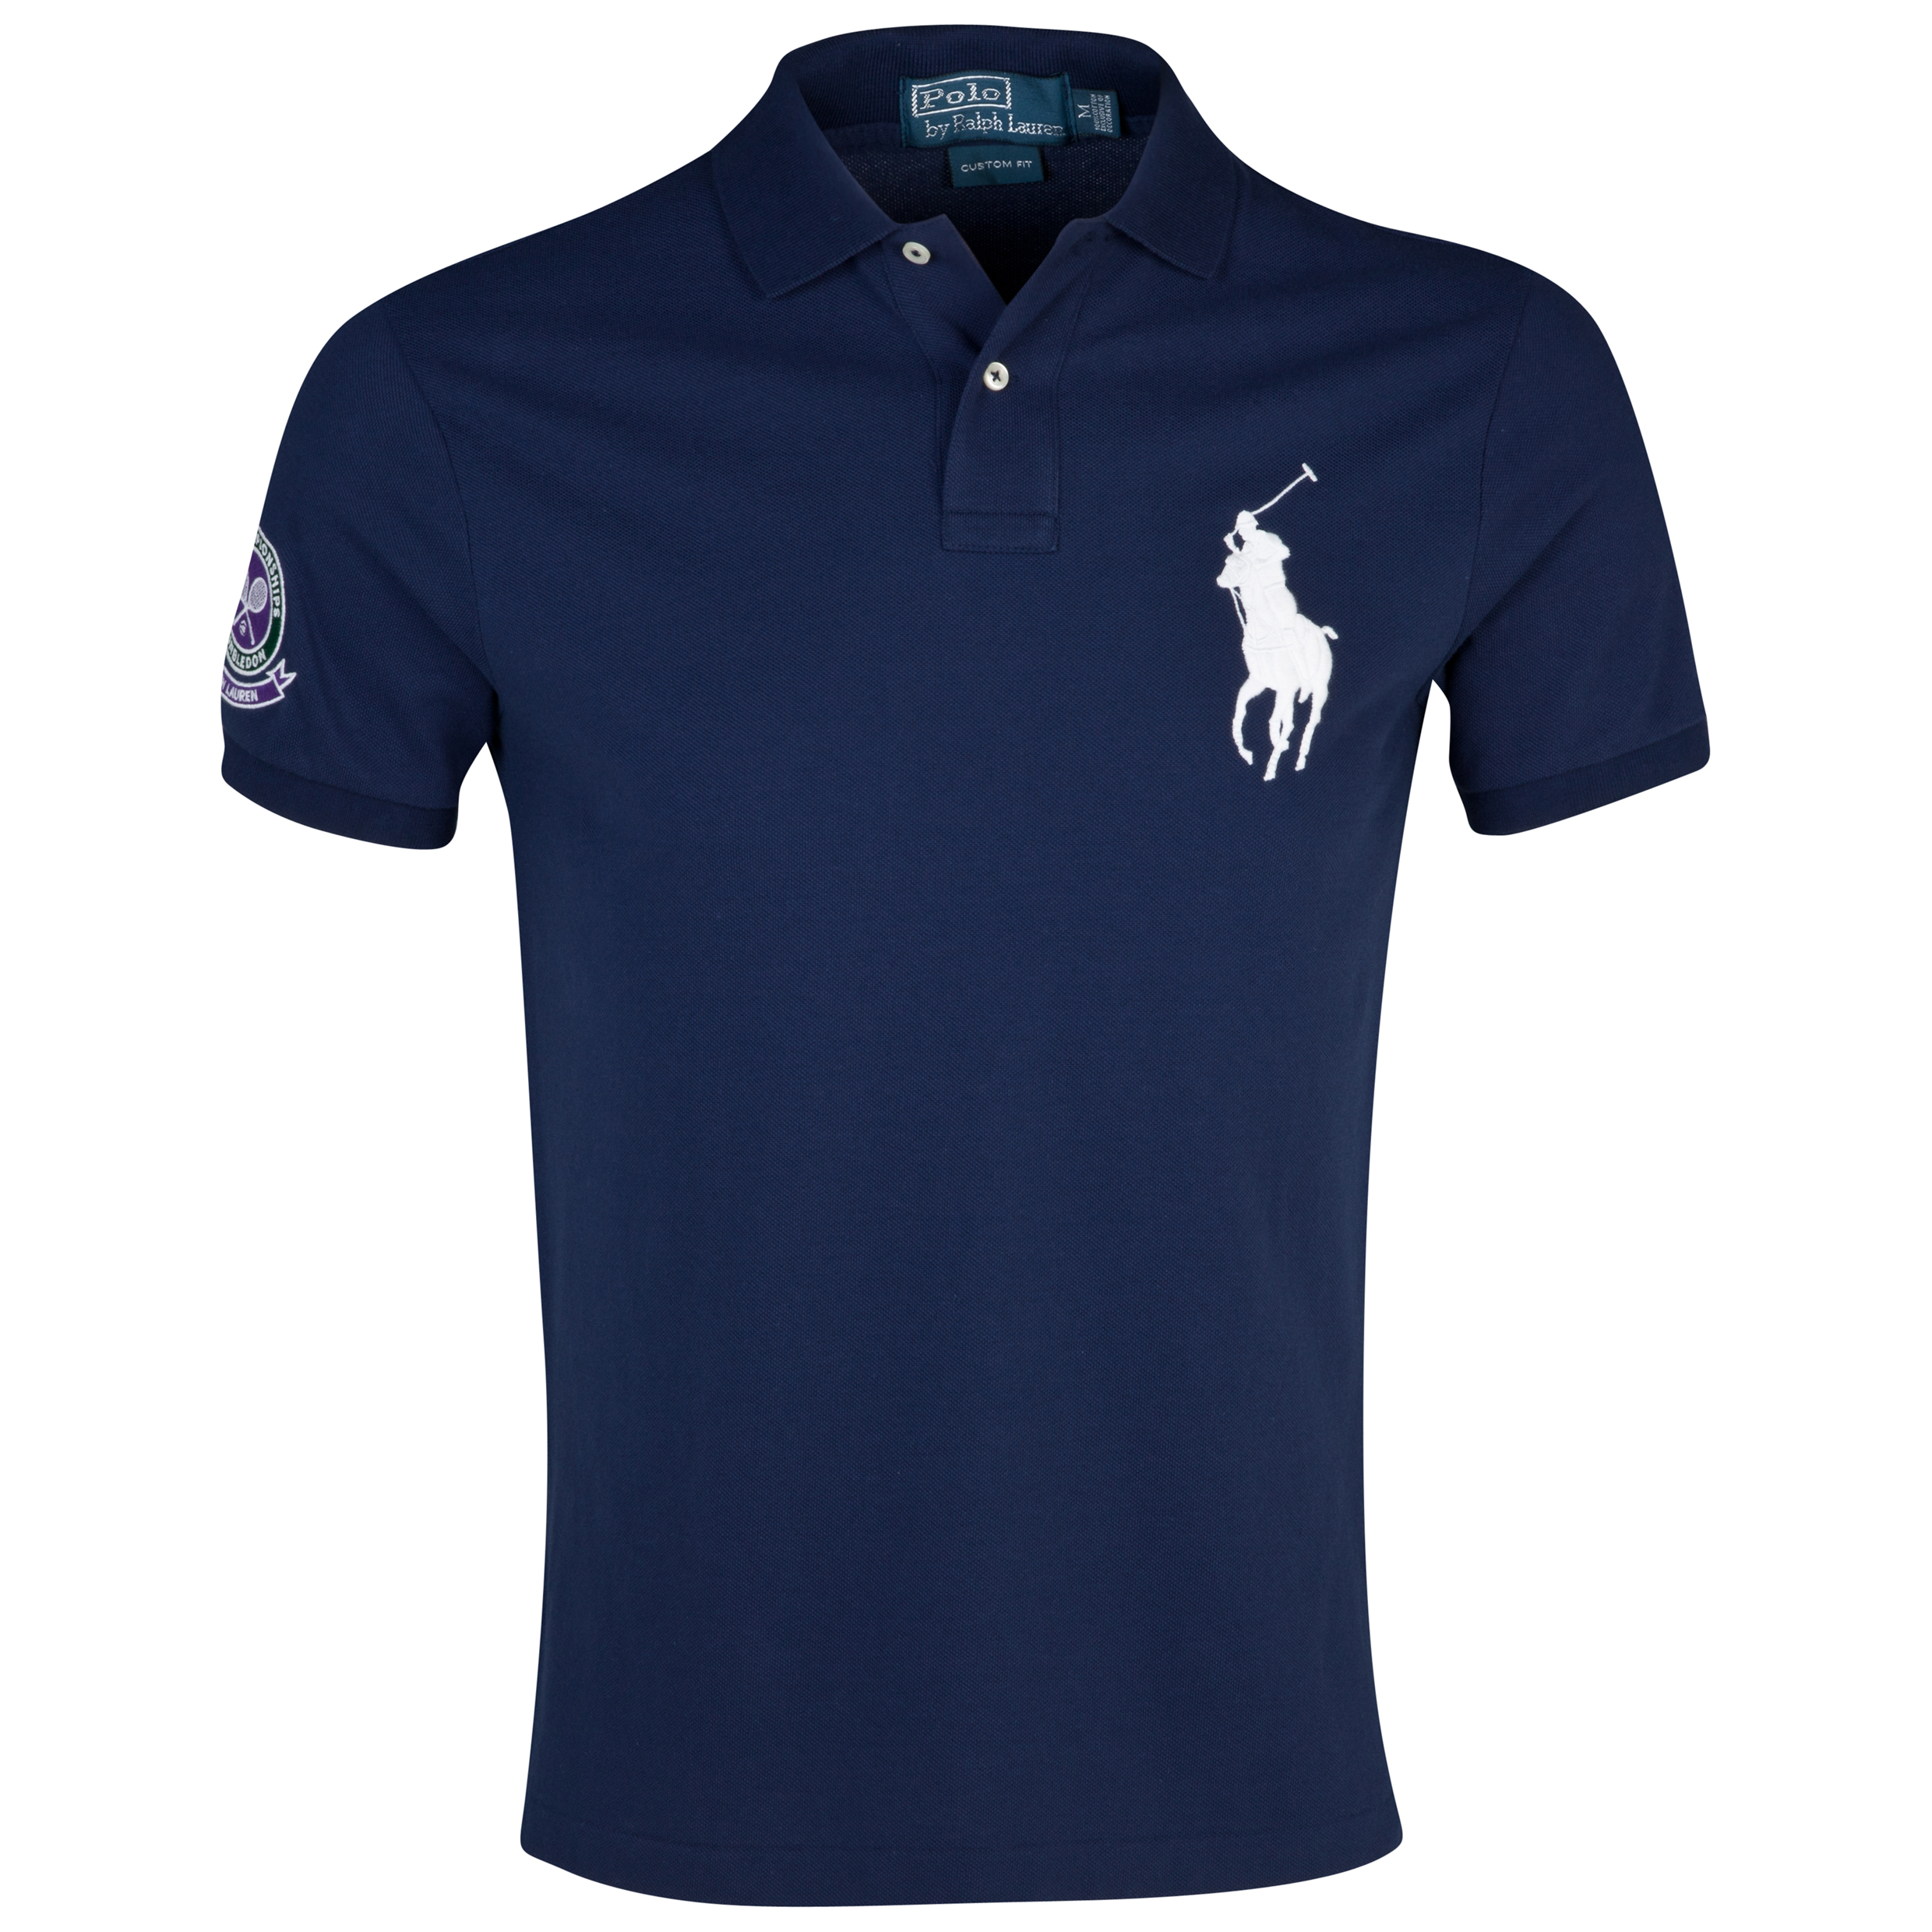 Wimbledon Polo Ralph Lauren Wimbledon Custom Fit Solid Weathered Mesh Polo Navy